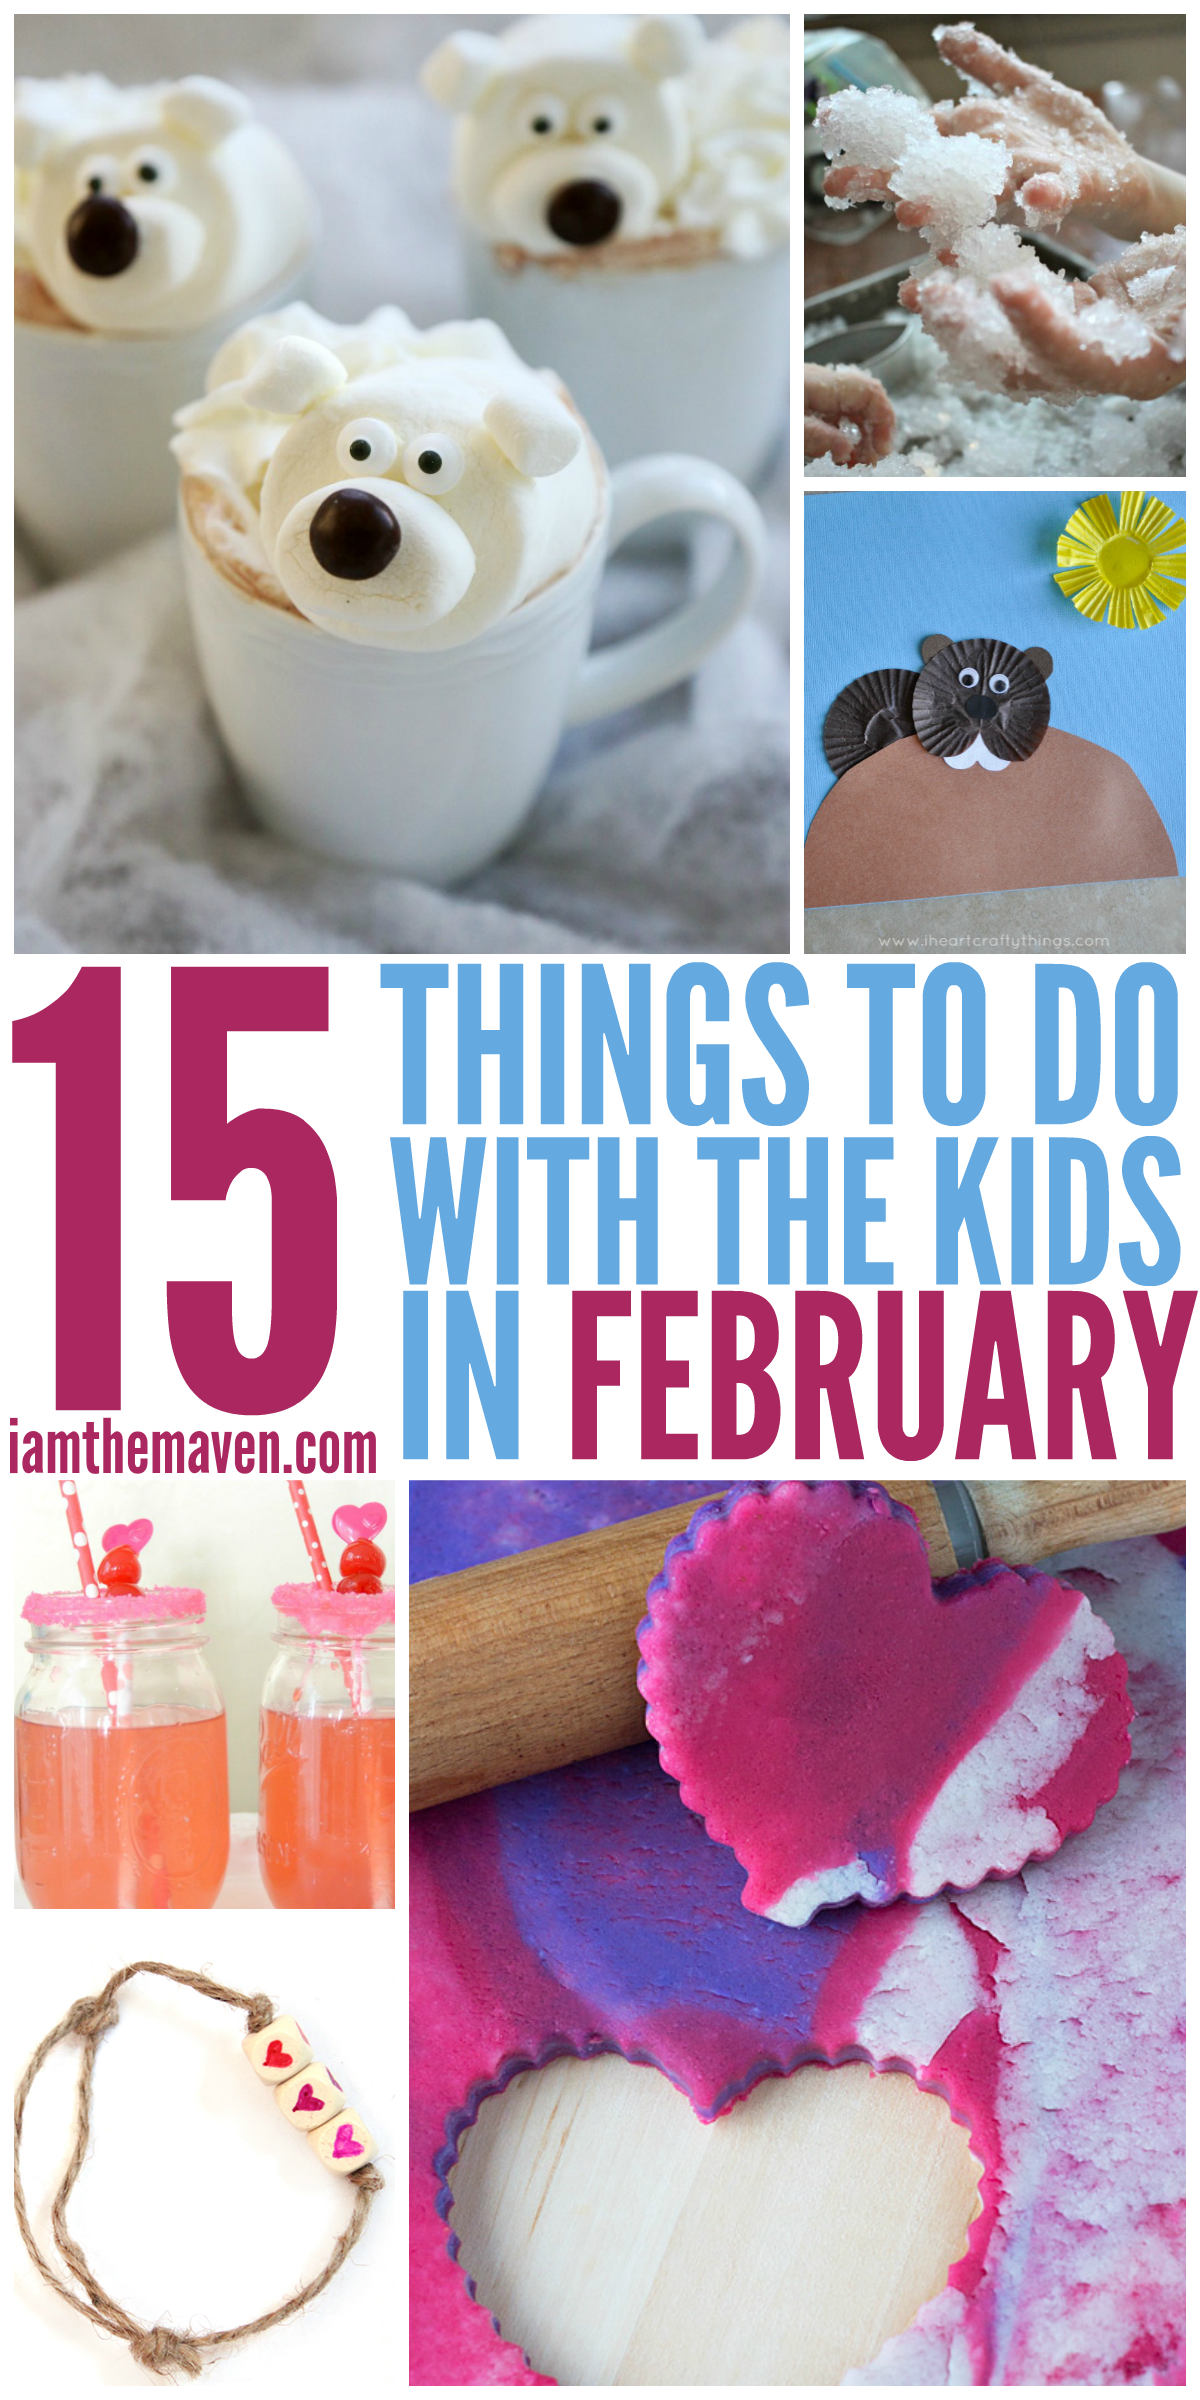 There's a chill in the air, but you won't want to miss these things to do in February with Kids!